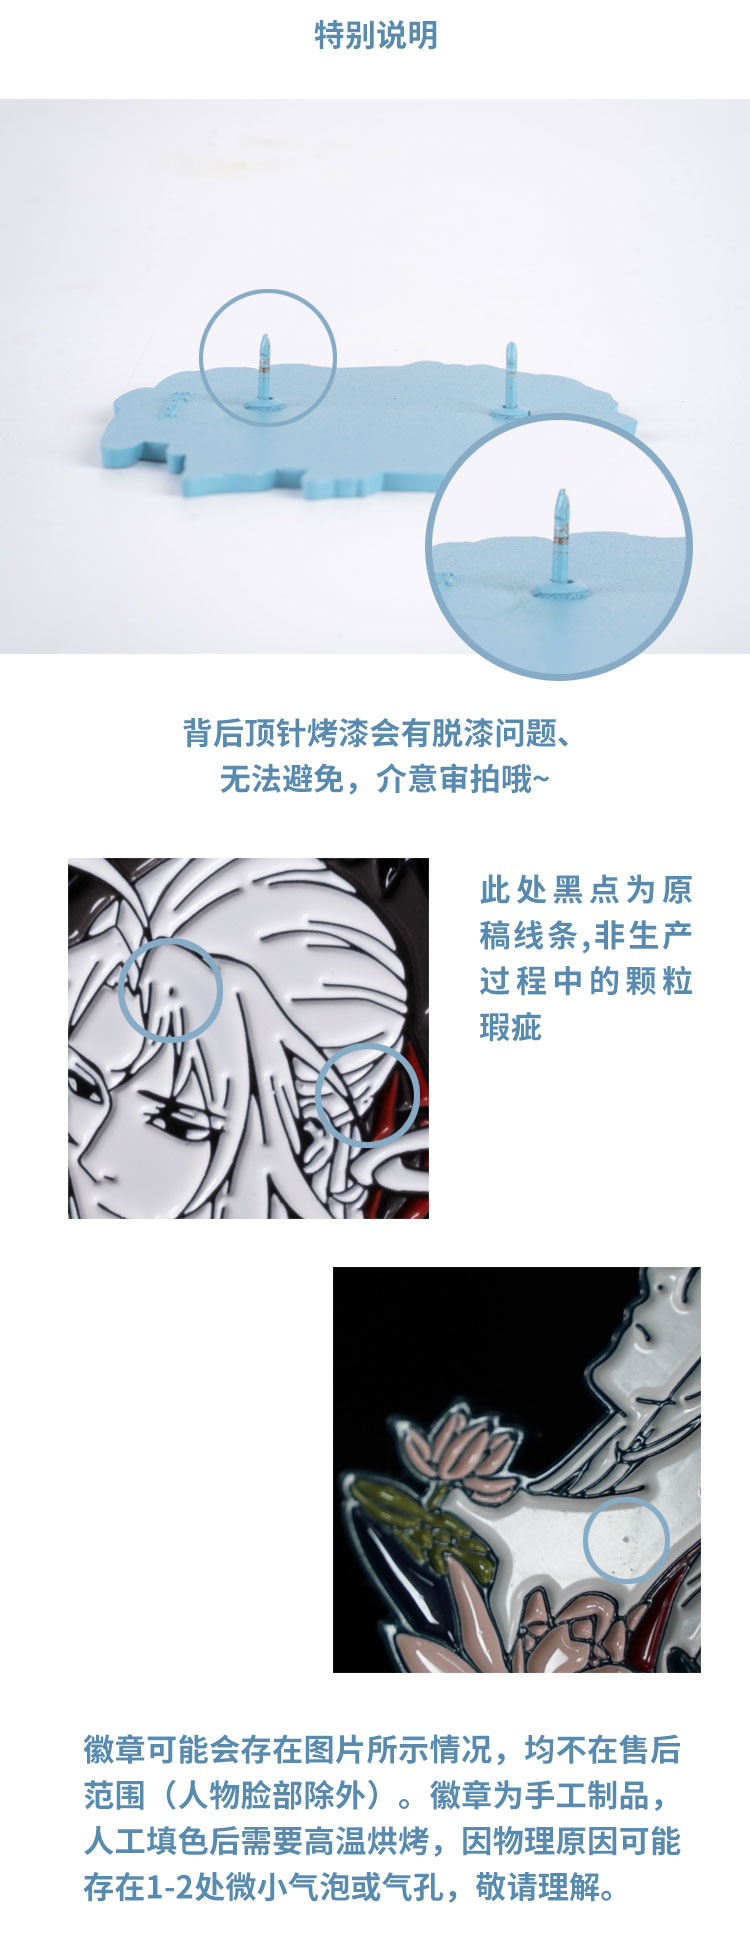 Details about  /Grandmaster of Demonic Cultivation Wuxian Wangji Metal Badge The Untamed Badges